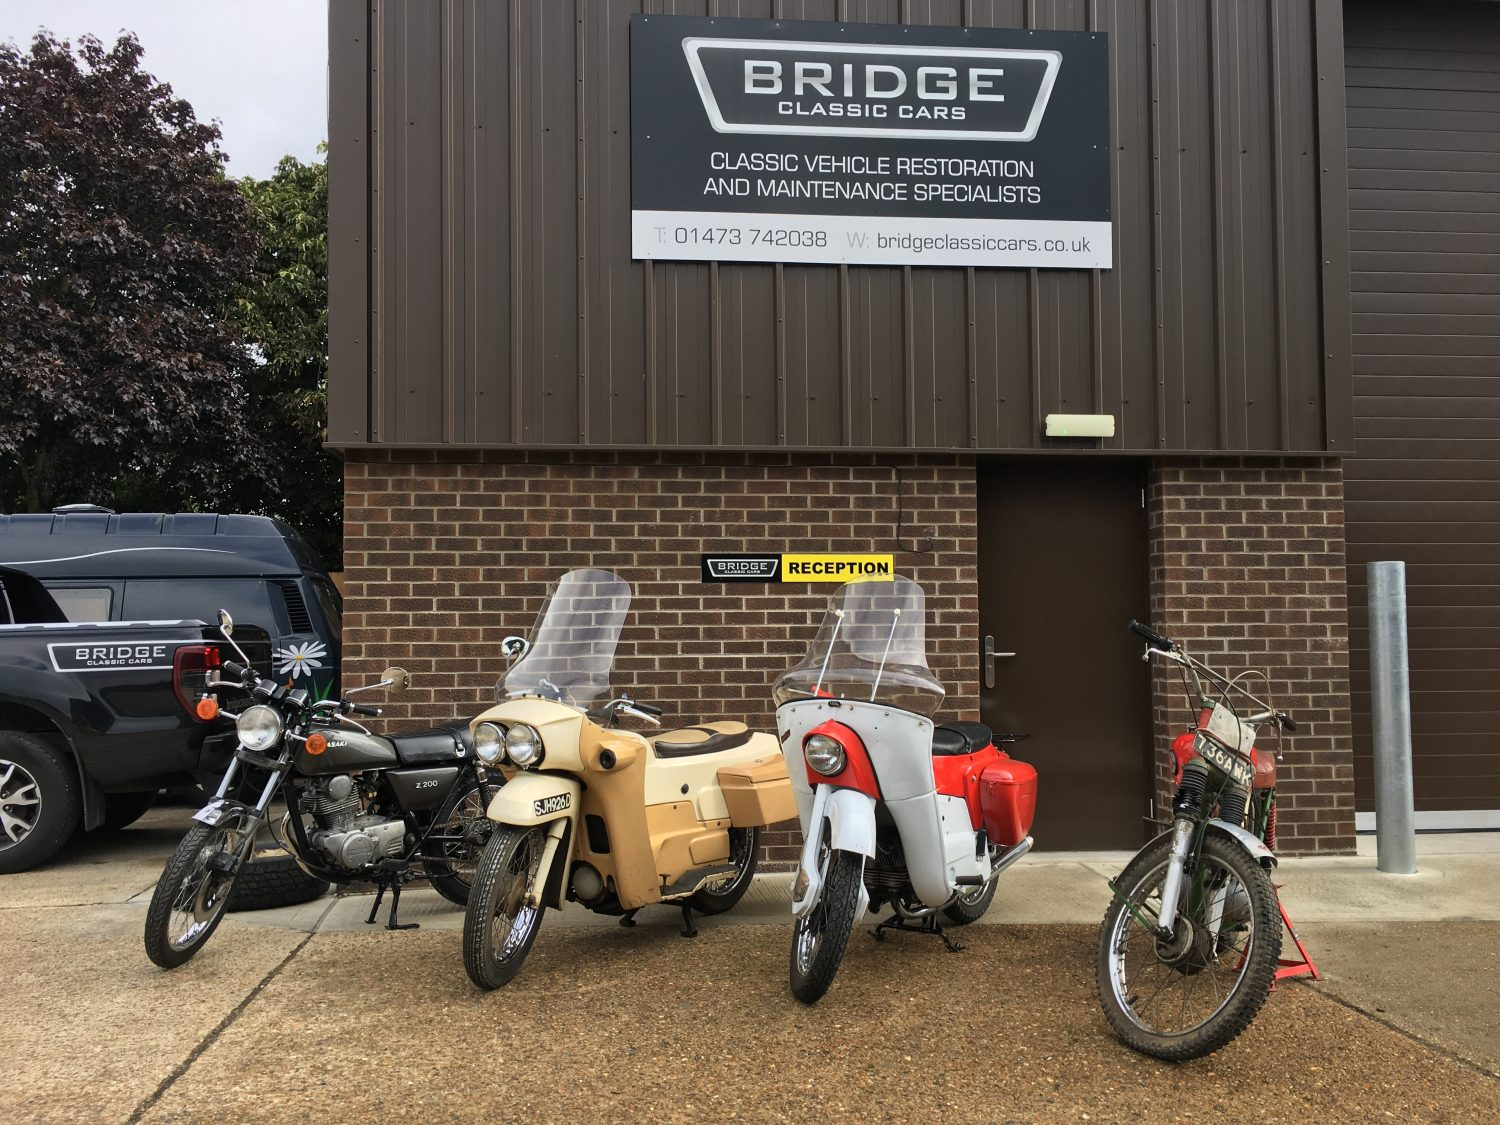 Collection of classic motorcycles